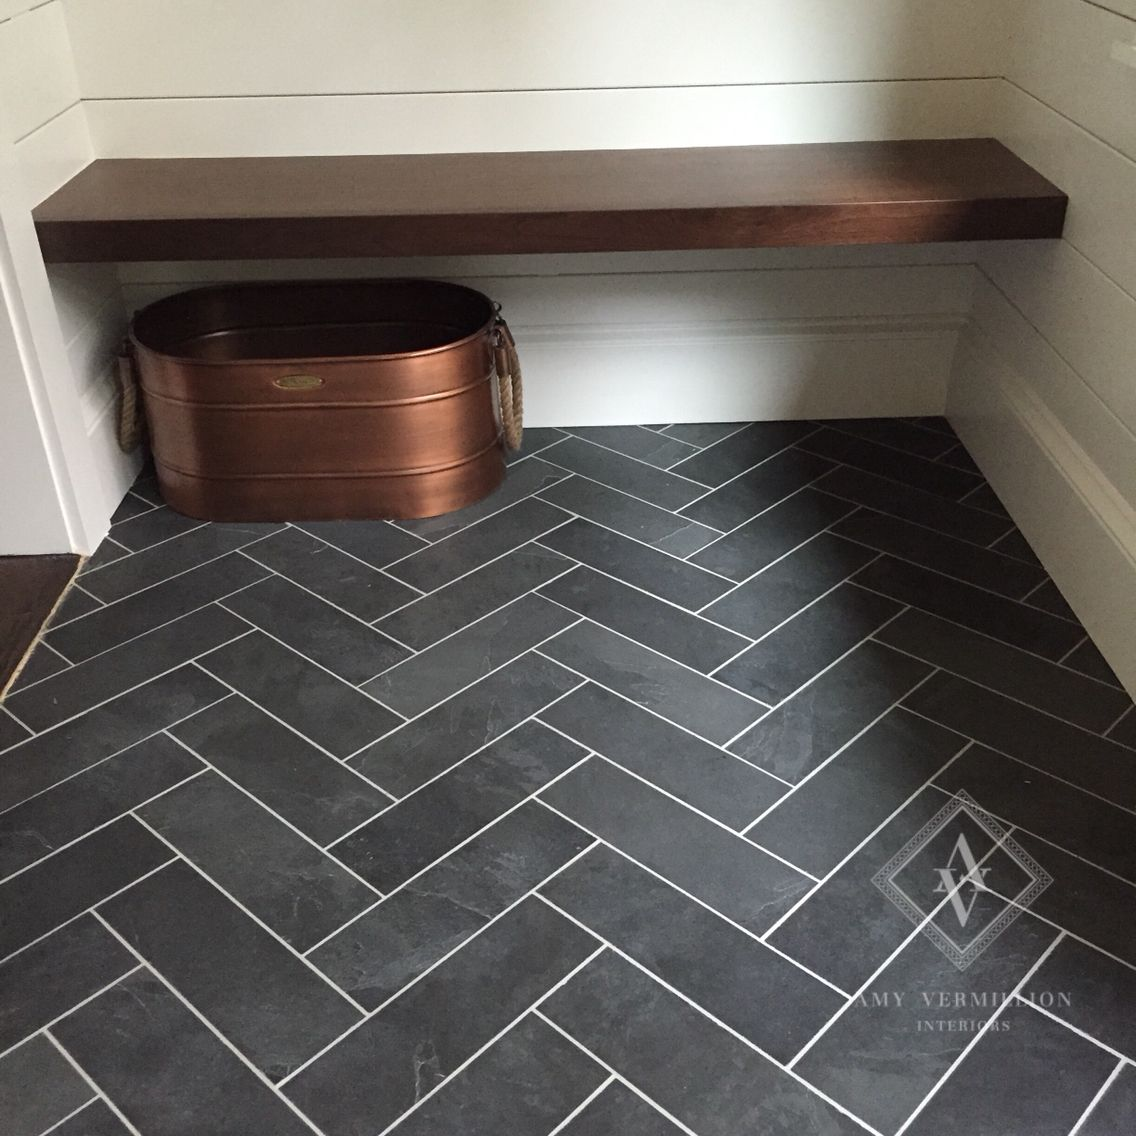 Slate Kitchen Floor Tiles Amy Vermillions Home Hand Cut Herringbone Slate Tile Floor In